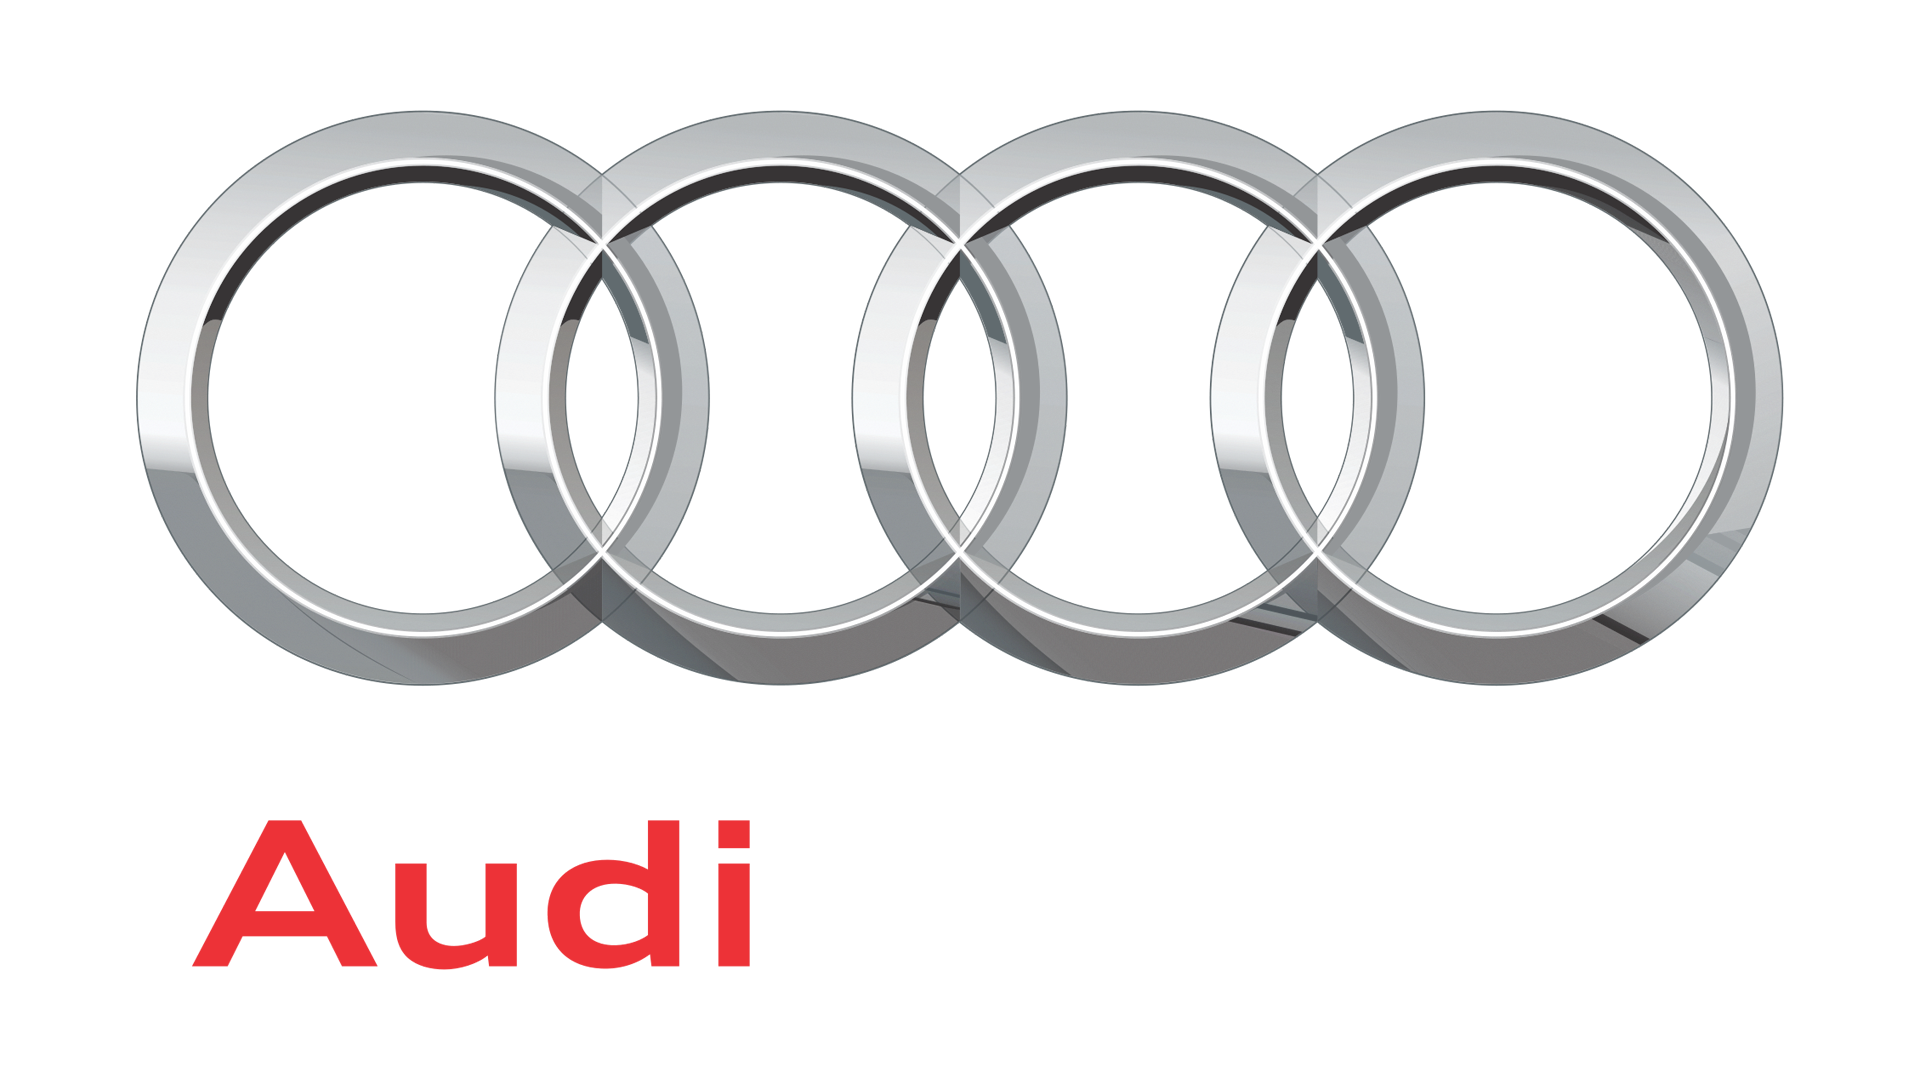 Audi drawing logo. Hd png meaning information